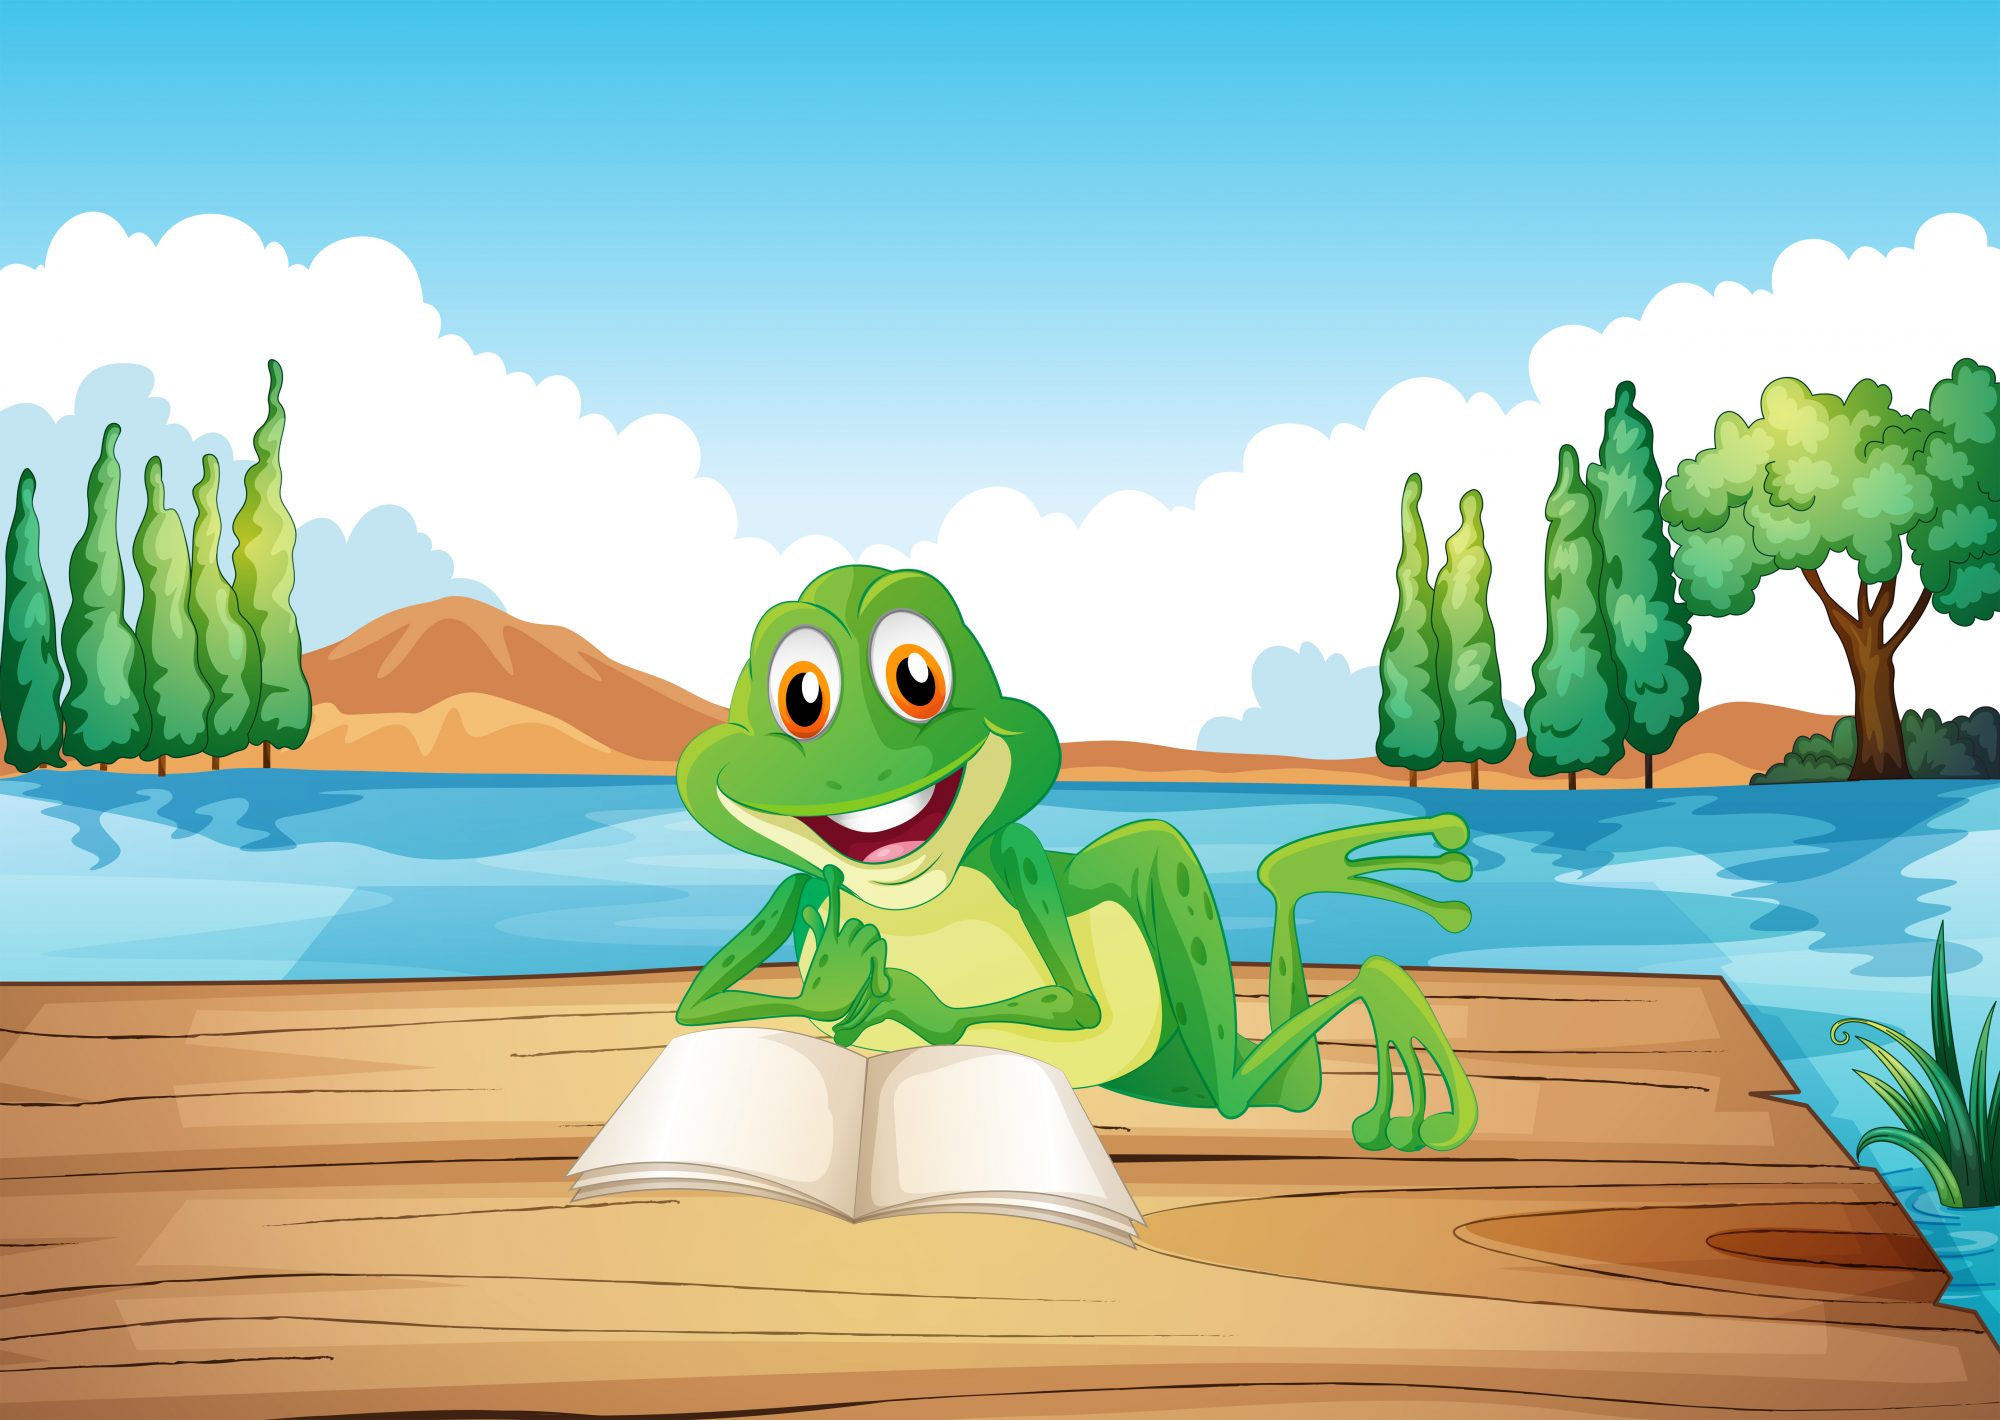 A frog reading a book at the wooden diving board